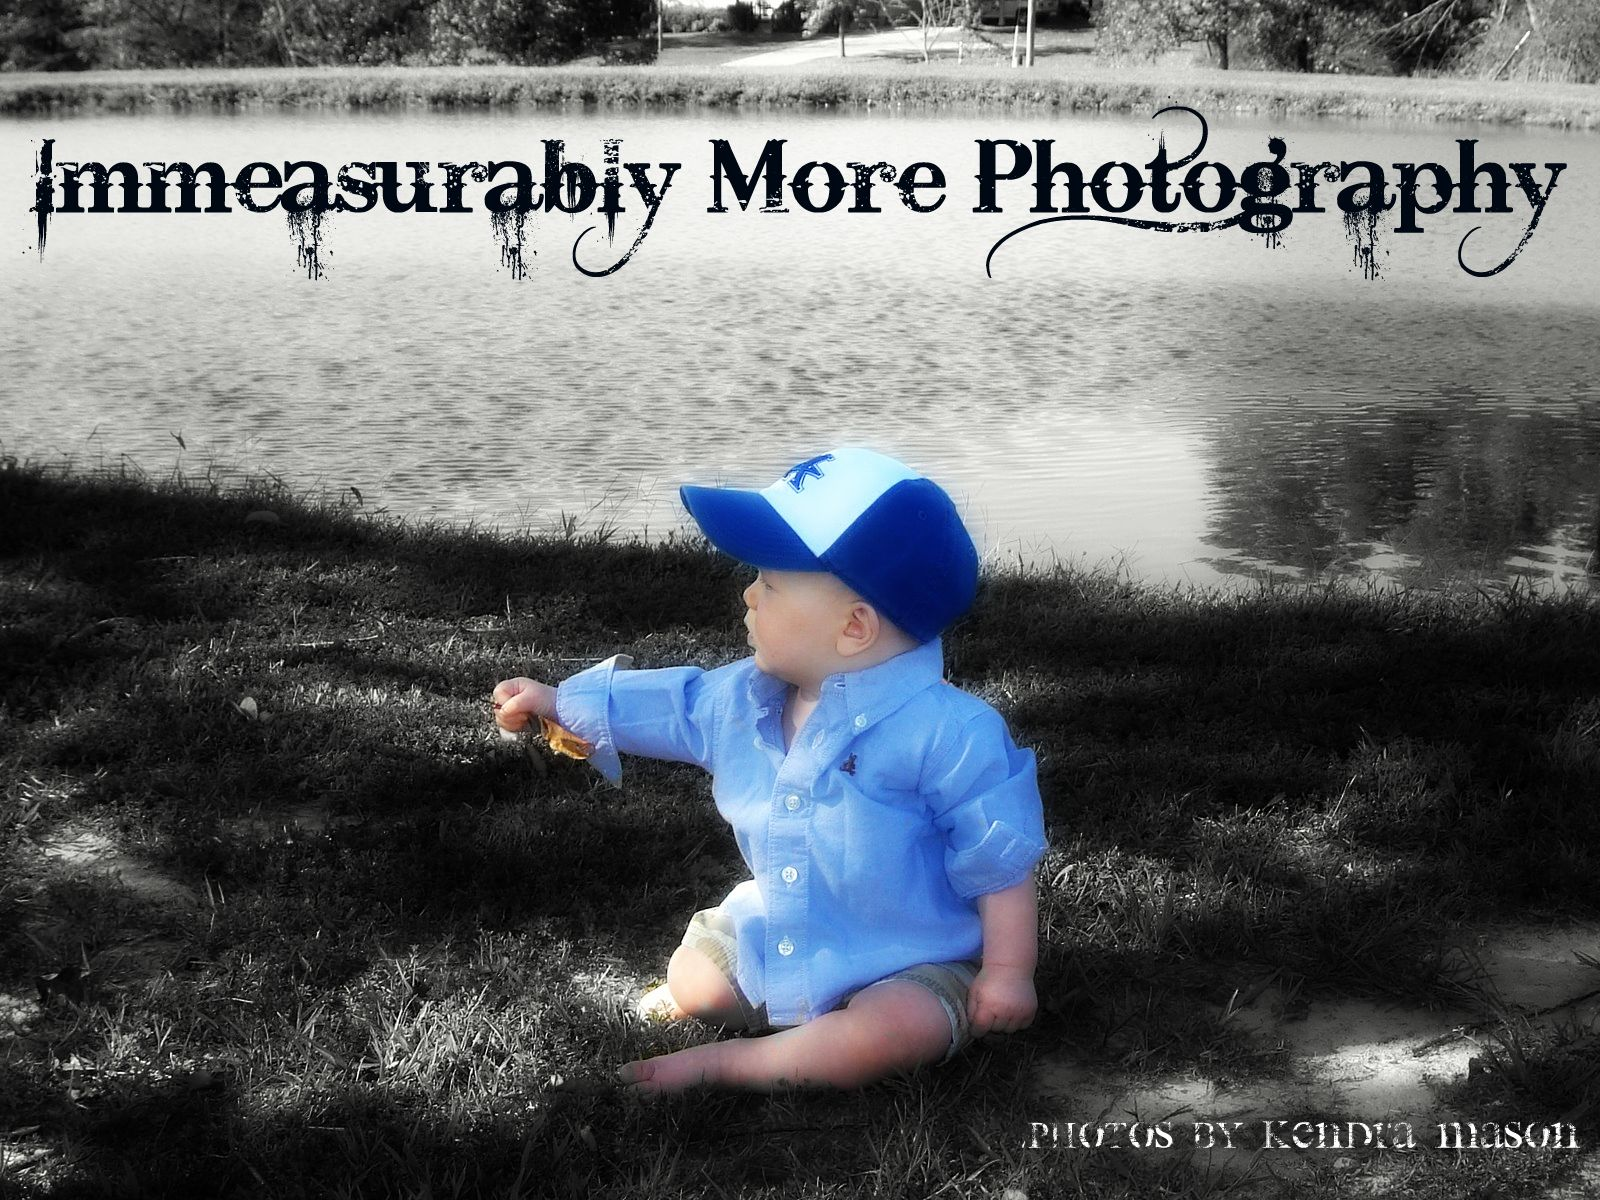 Immeasurably More Photography